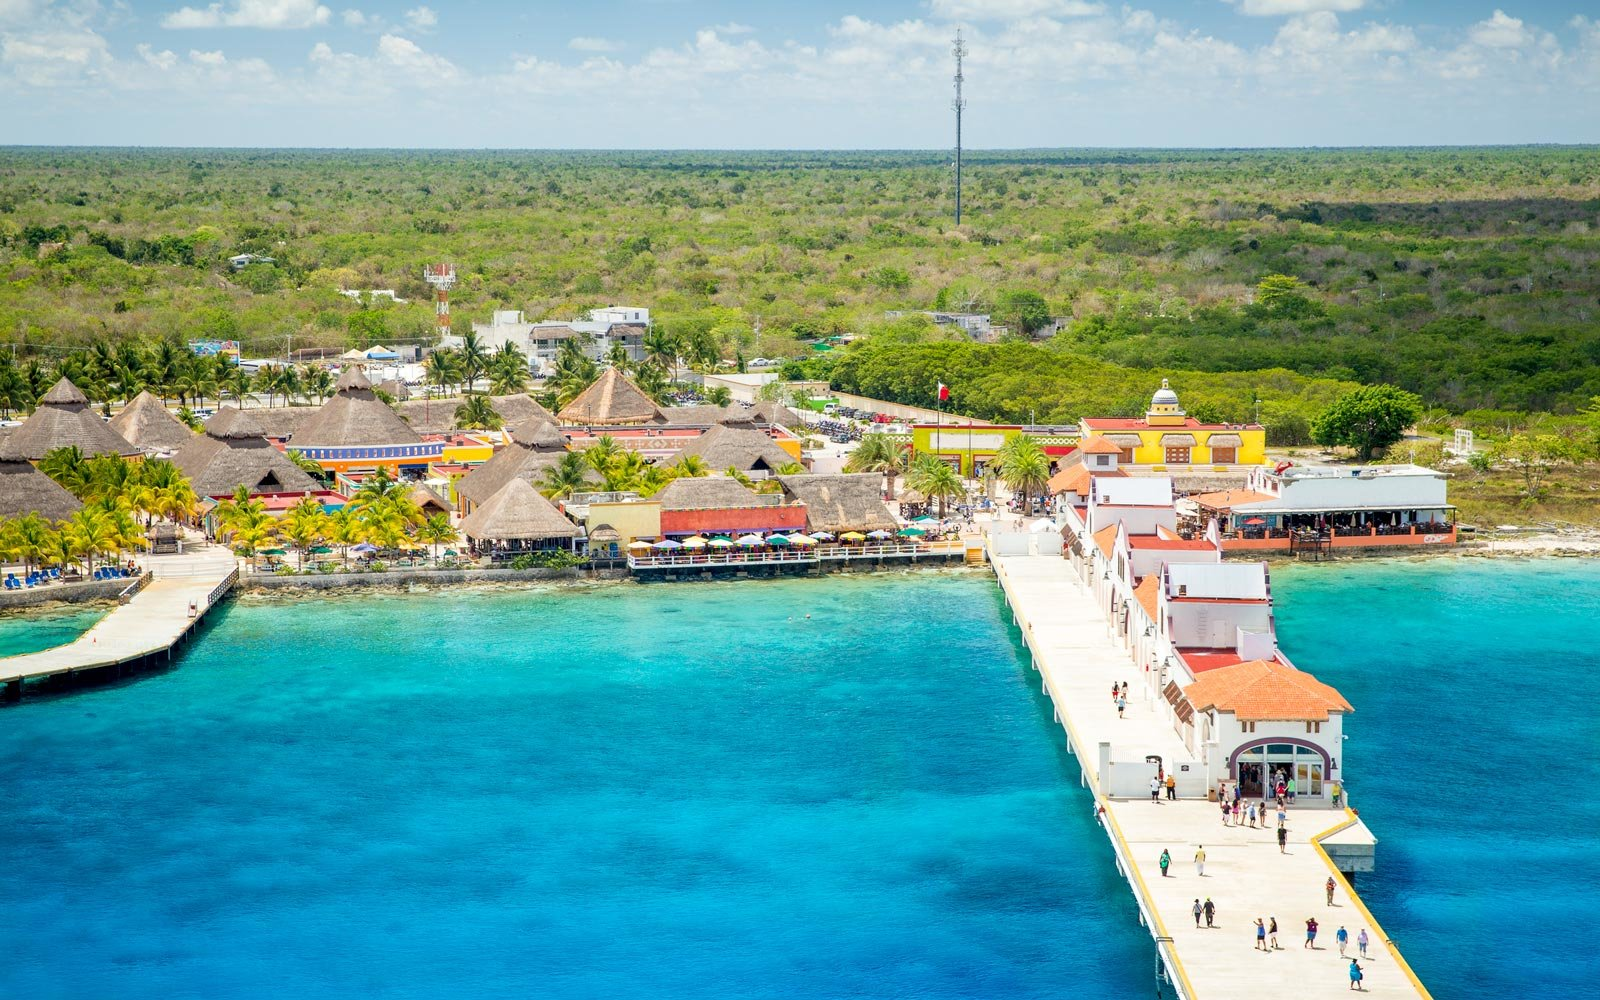 Royal Caribbean Just Announced Caribbean Sailings for Next Winter